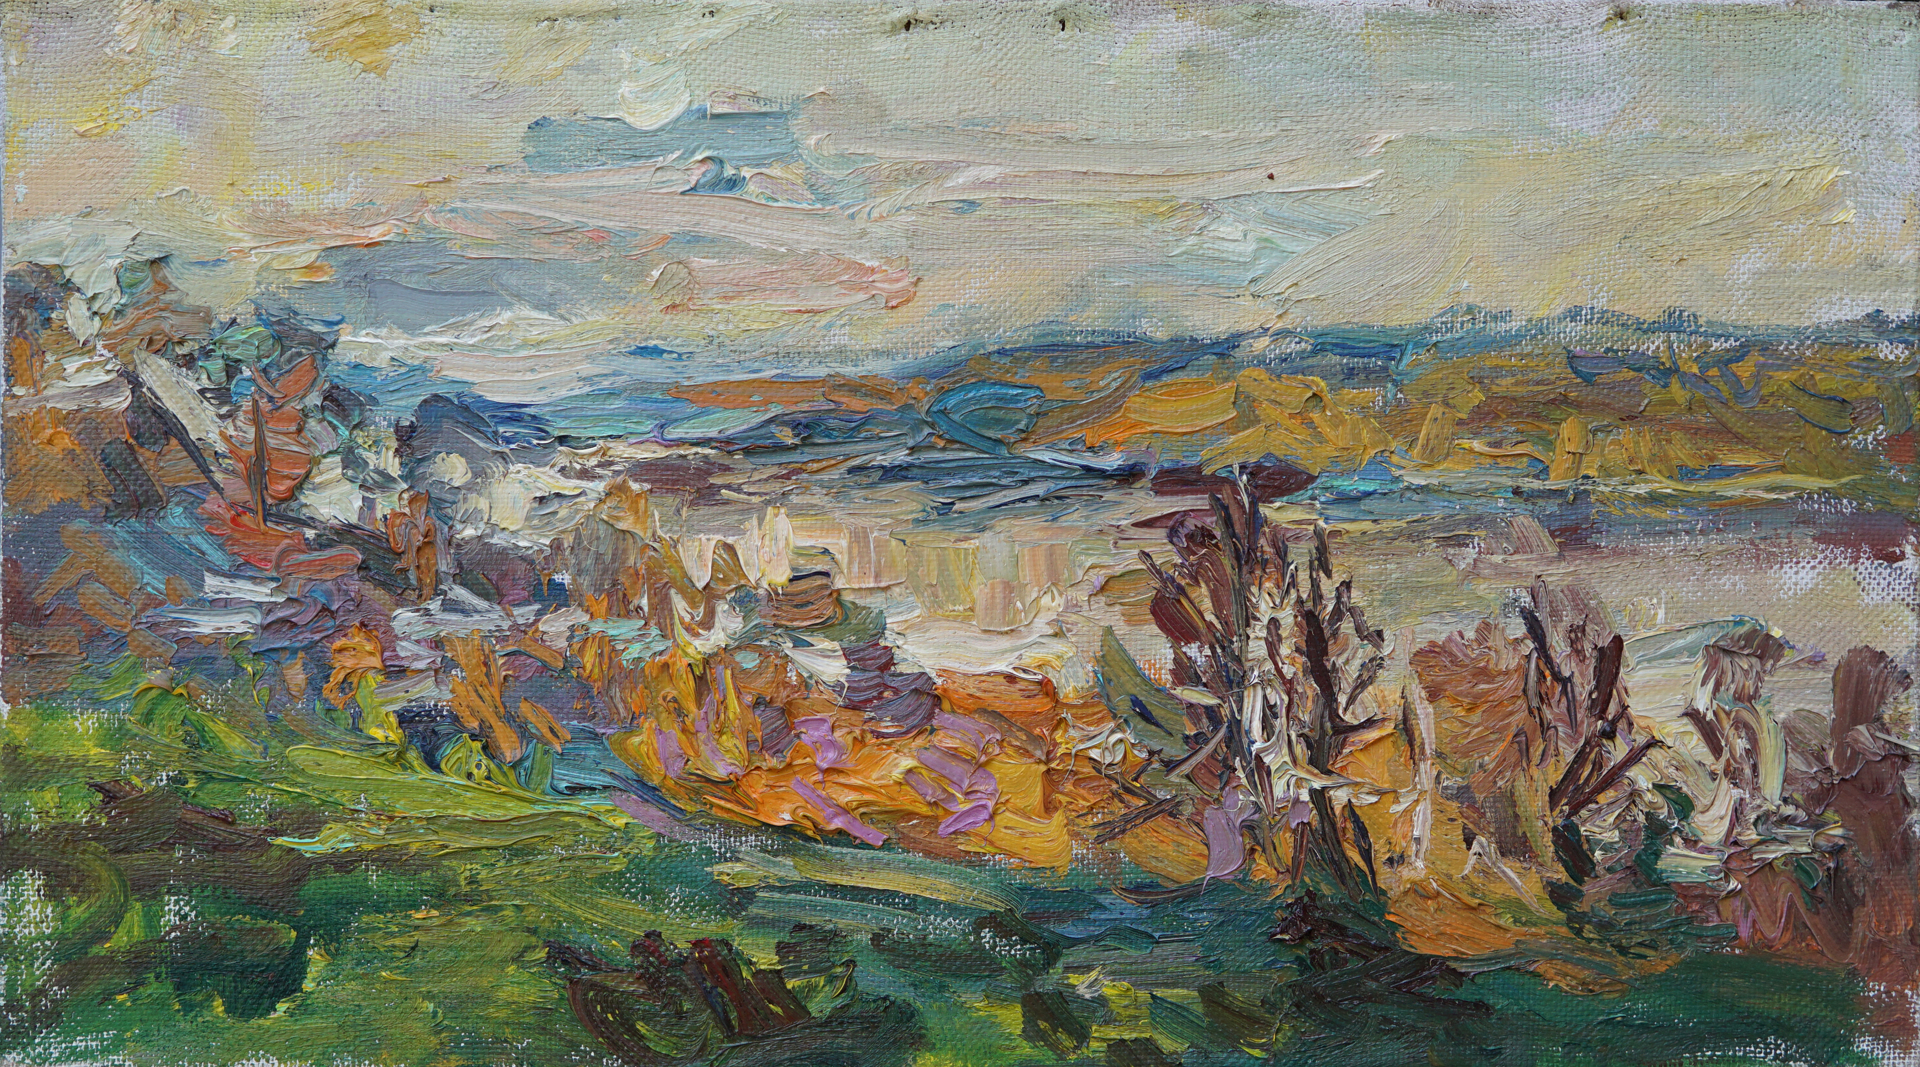 The Volga River in October by Ulrich Gleiter